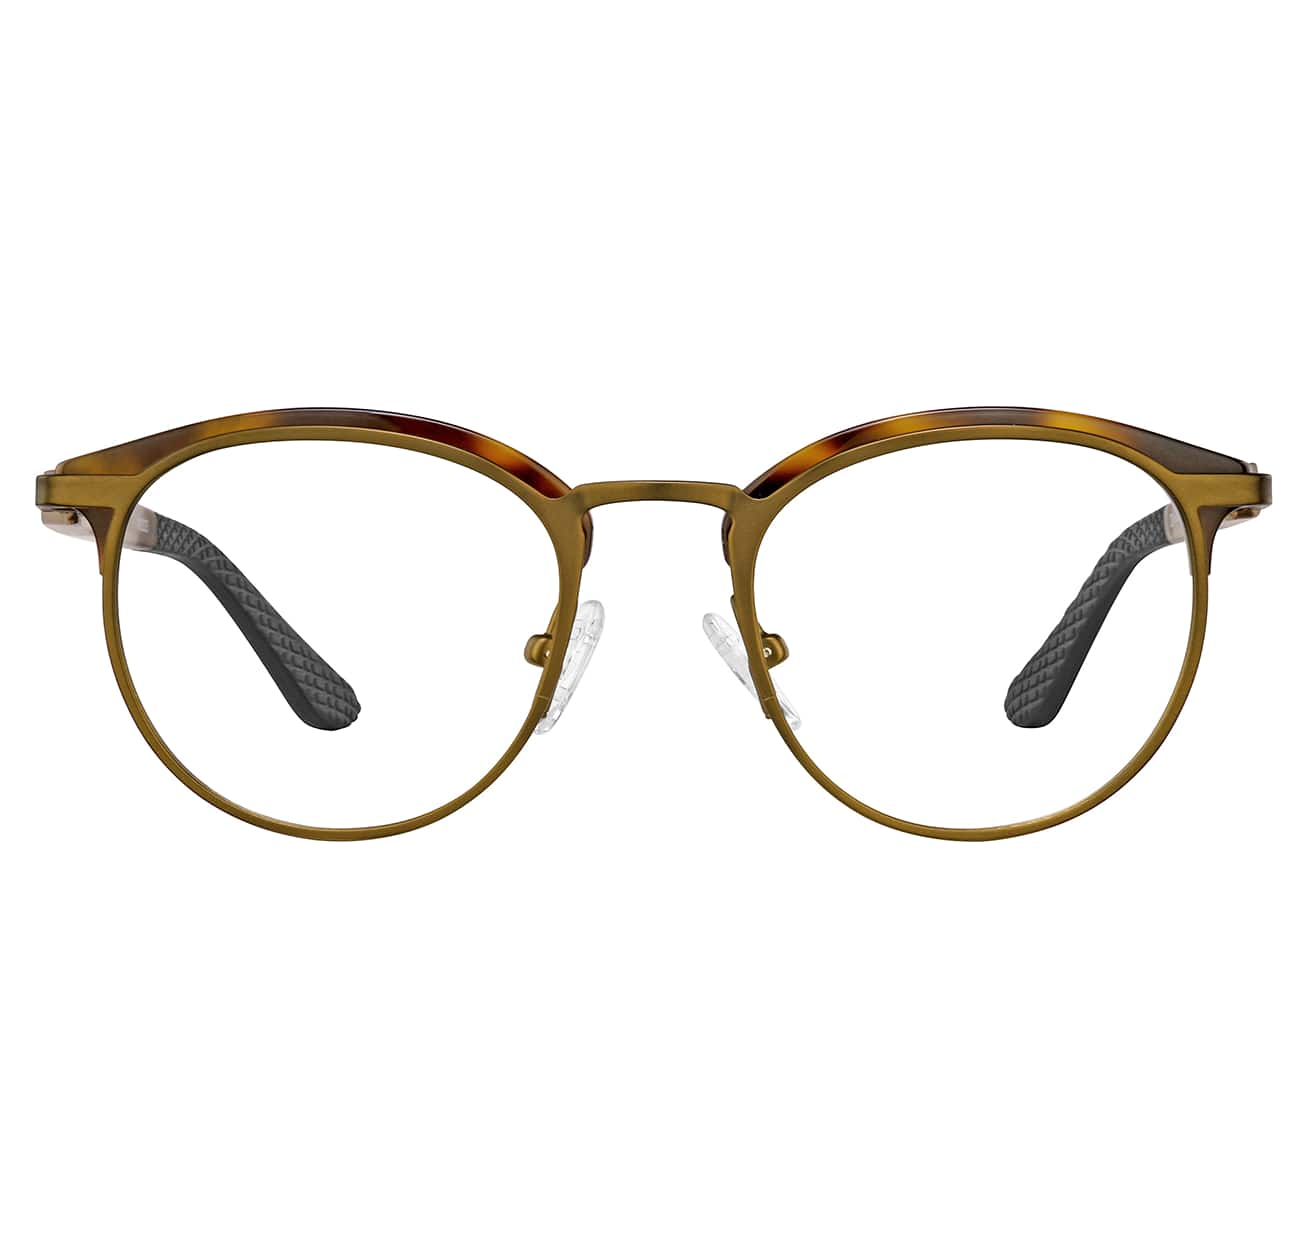 Image of Zenni brown round glasses I AM KIND #1912925.